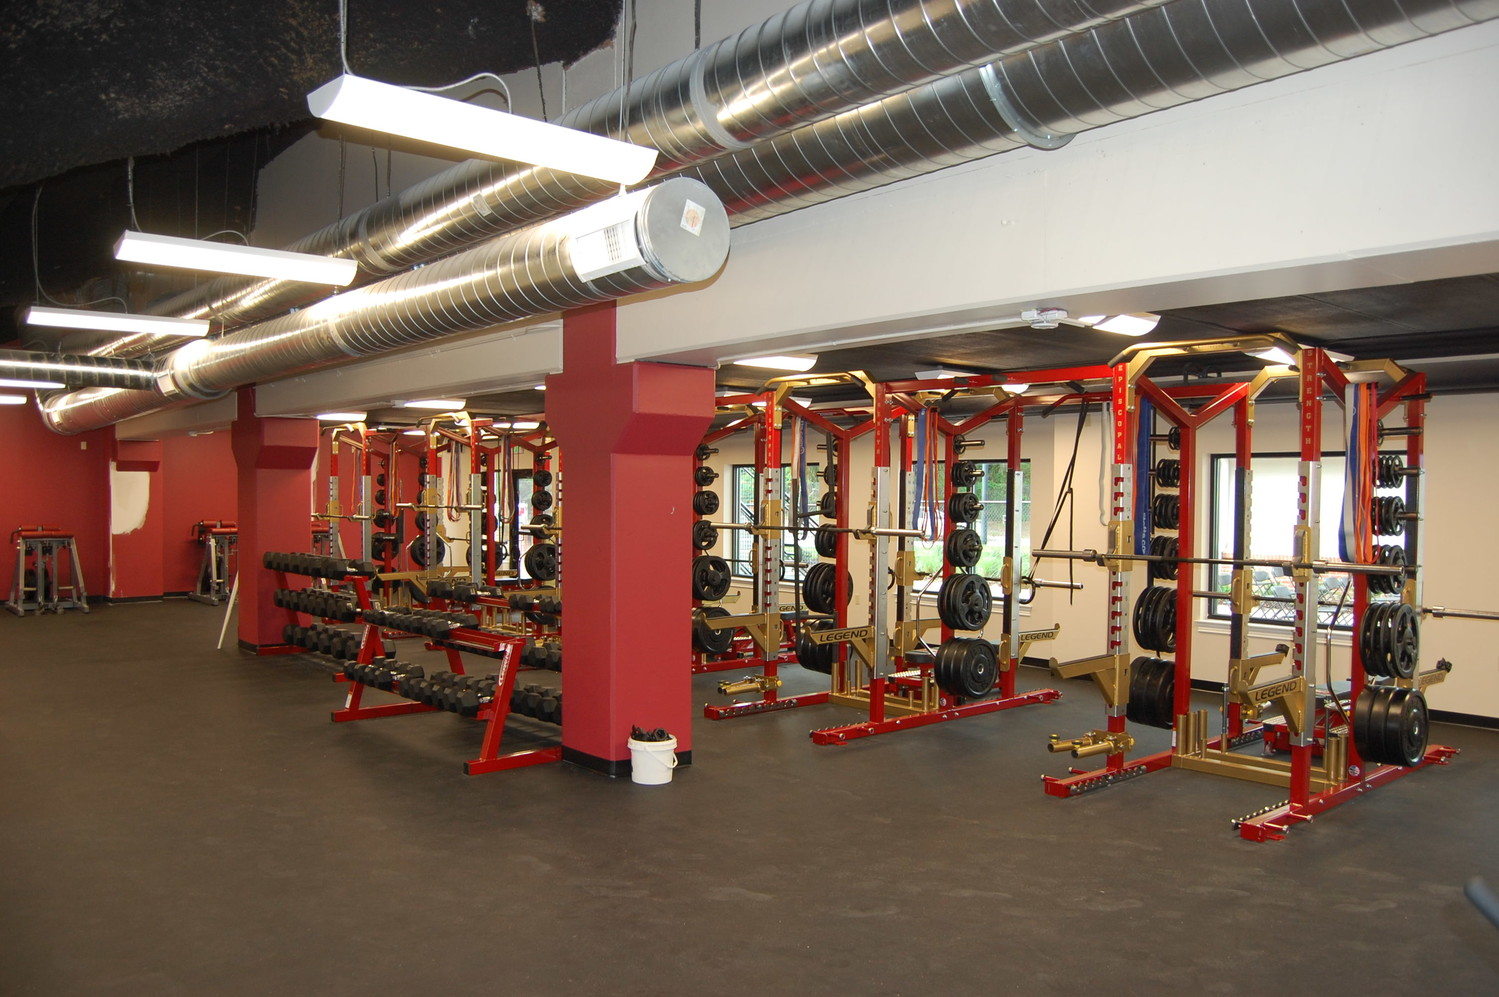 A fully equipped weight room for student-athletes was added as part of Episcopal's Leading the Way campaign.